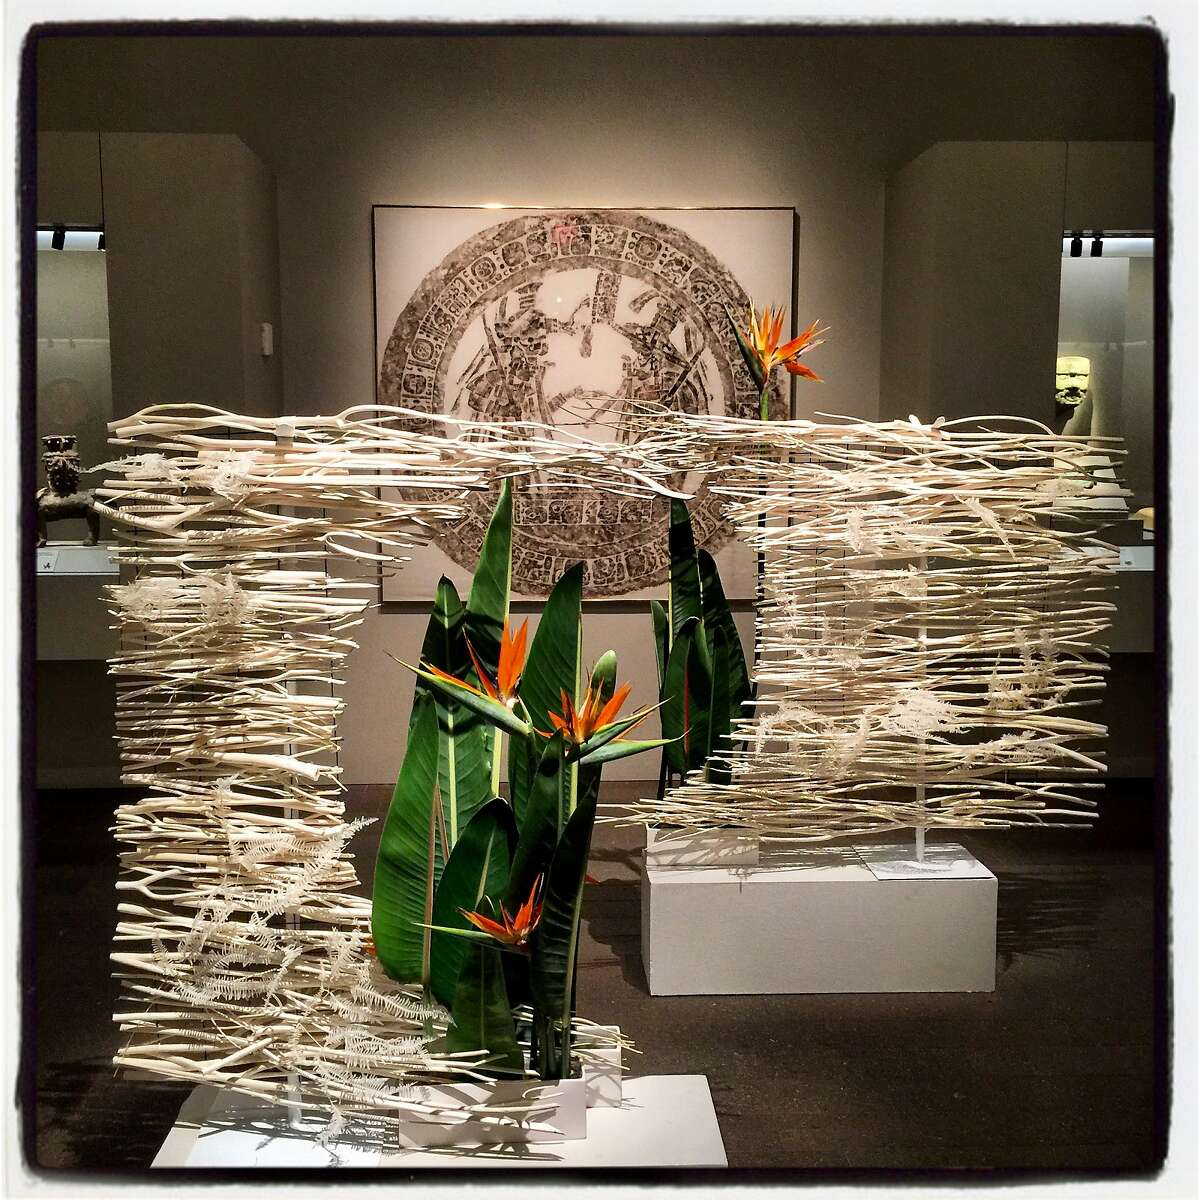 A Bouquets to Art floral tribute by Thanh Nguyen and Eclosion pays homage to a work by artist Merle Green Robertson at the de Young Museum on March 12, 2018.